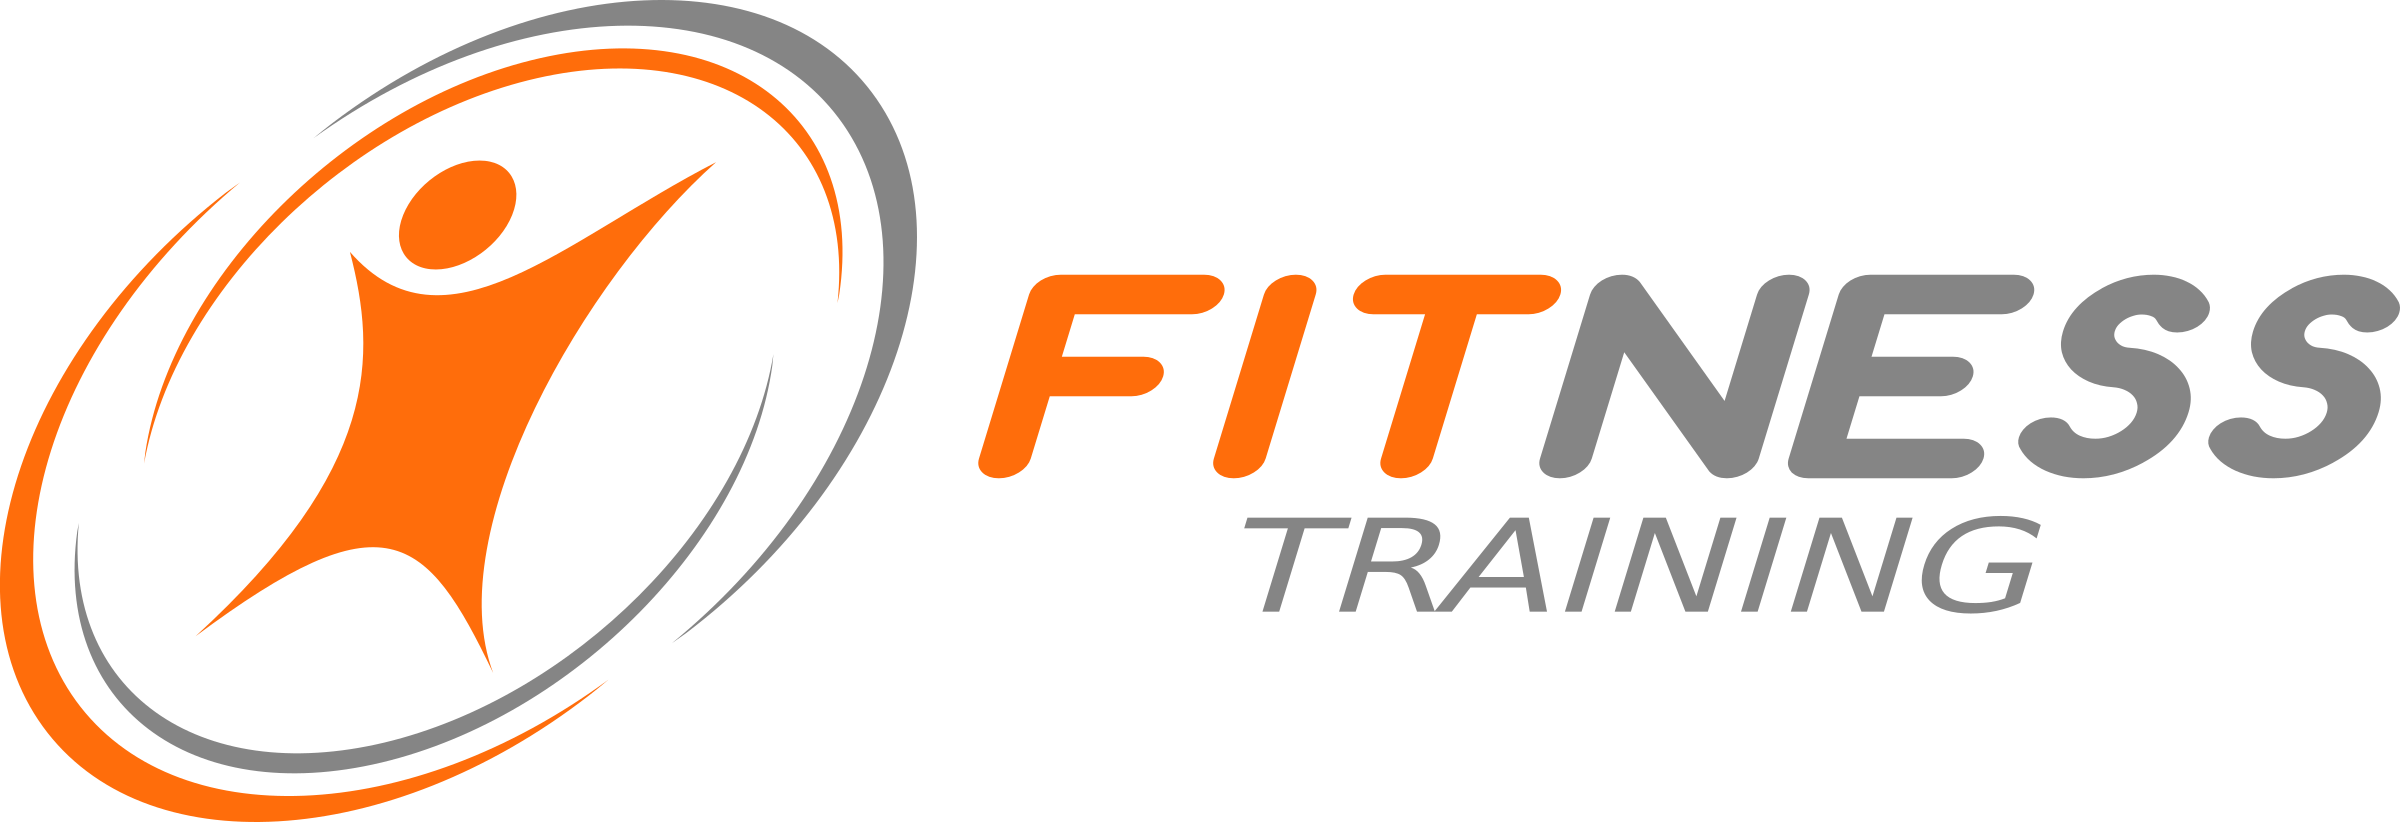 fitness logo by donchico